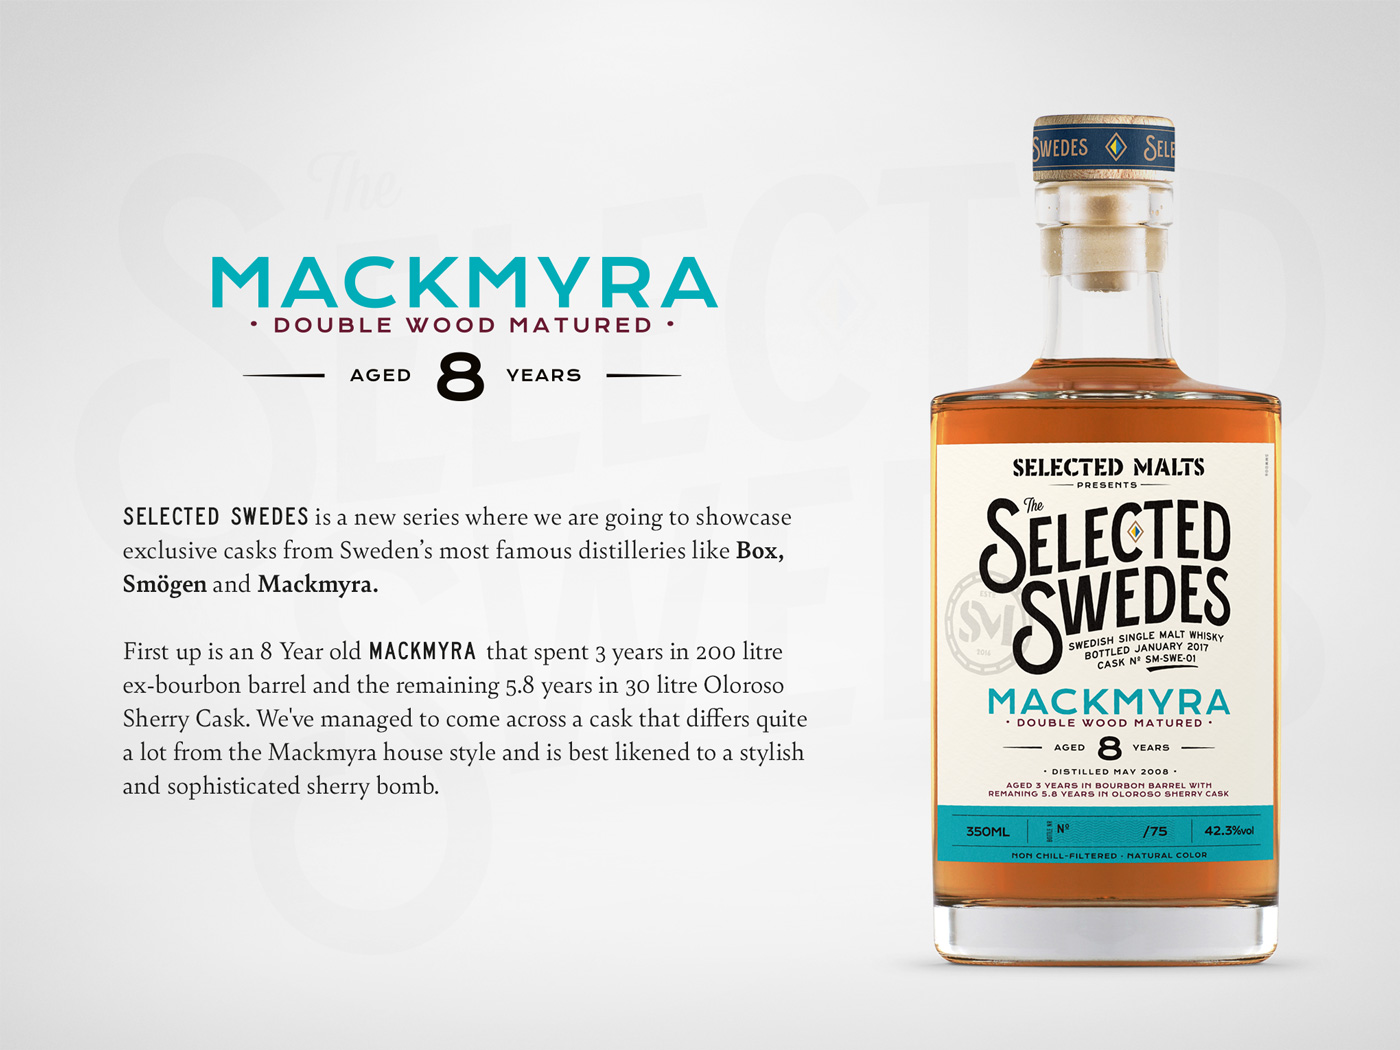 Selected Malts Selected Swedes Mackmyra Card